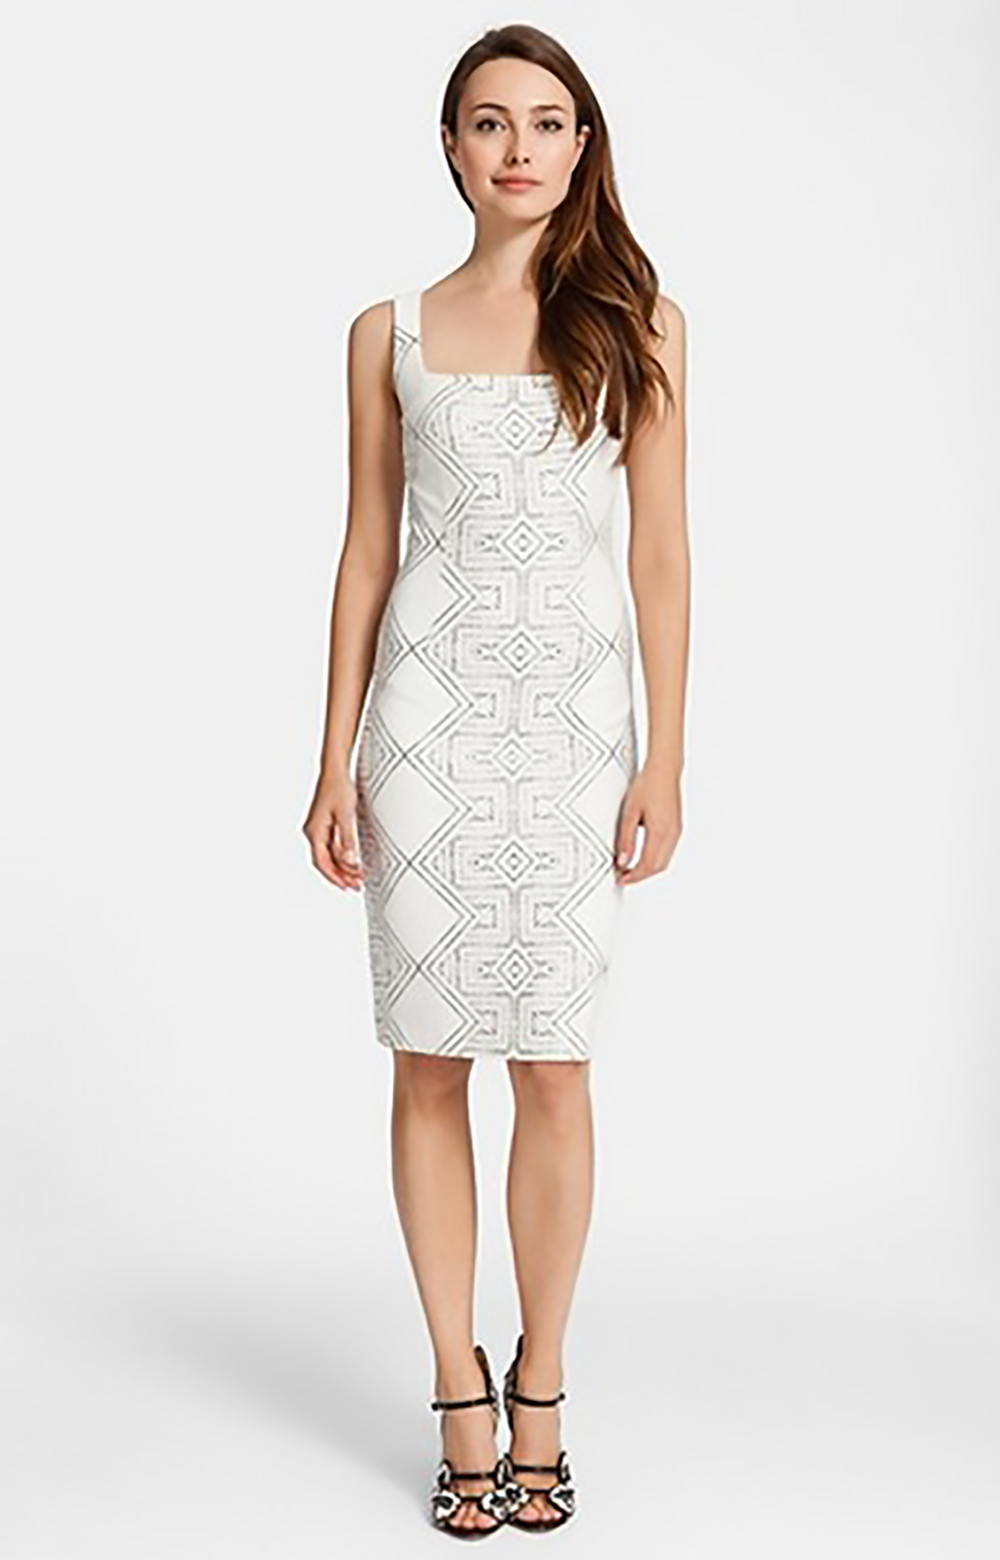 nordstrom cynthia steffe eloise sleeveless print dress sheath dress 1500.jpg